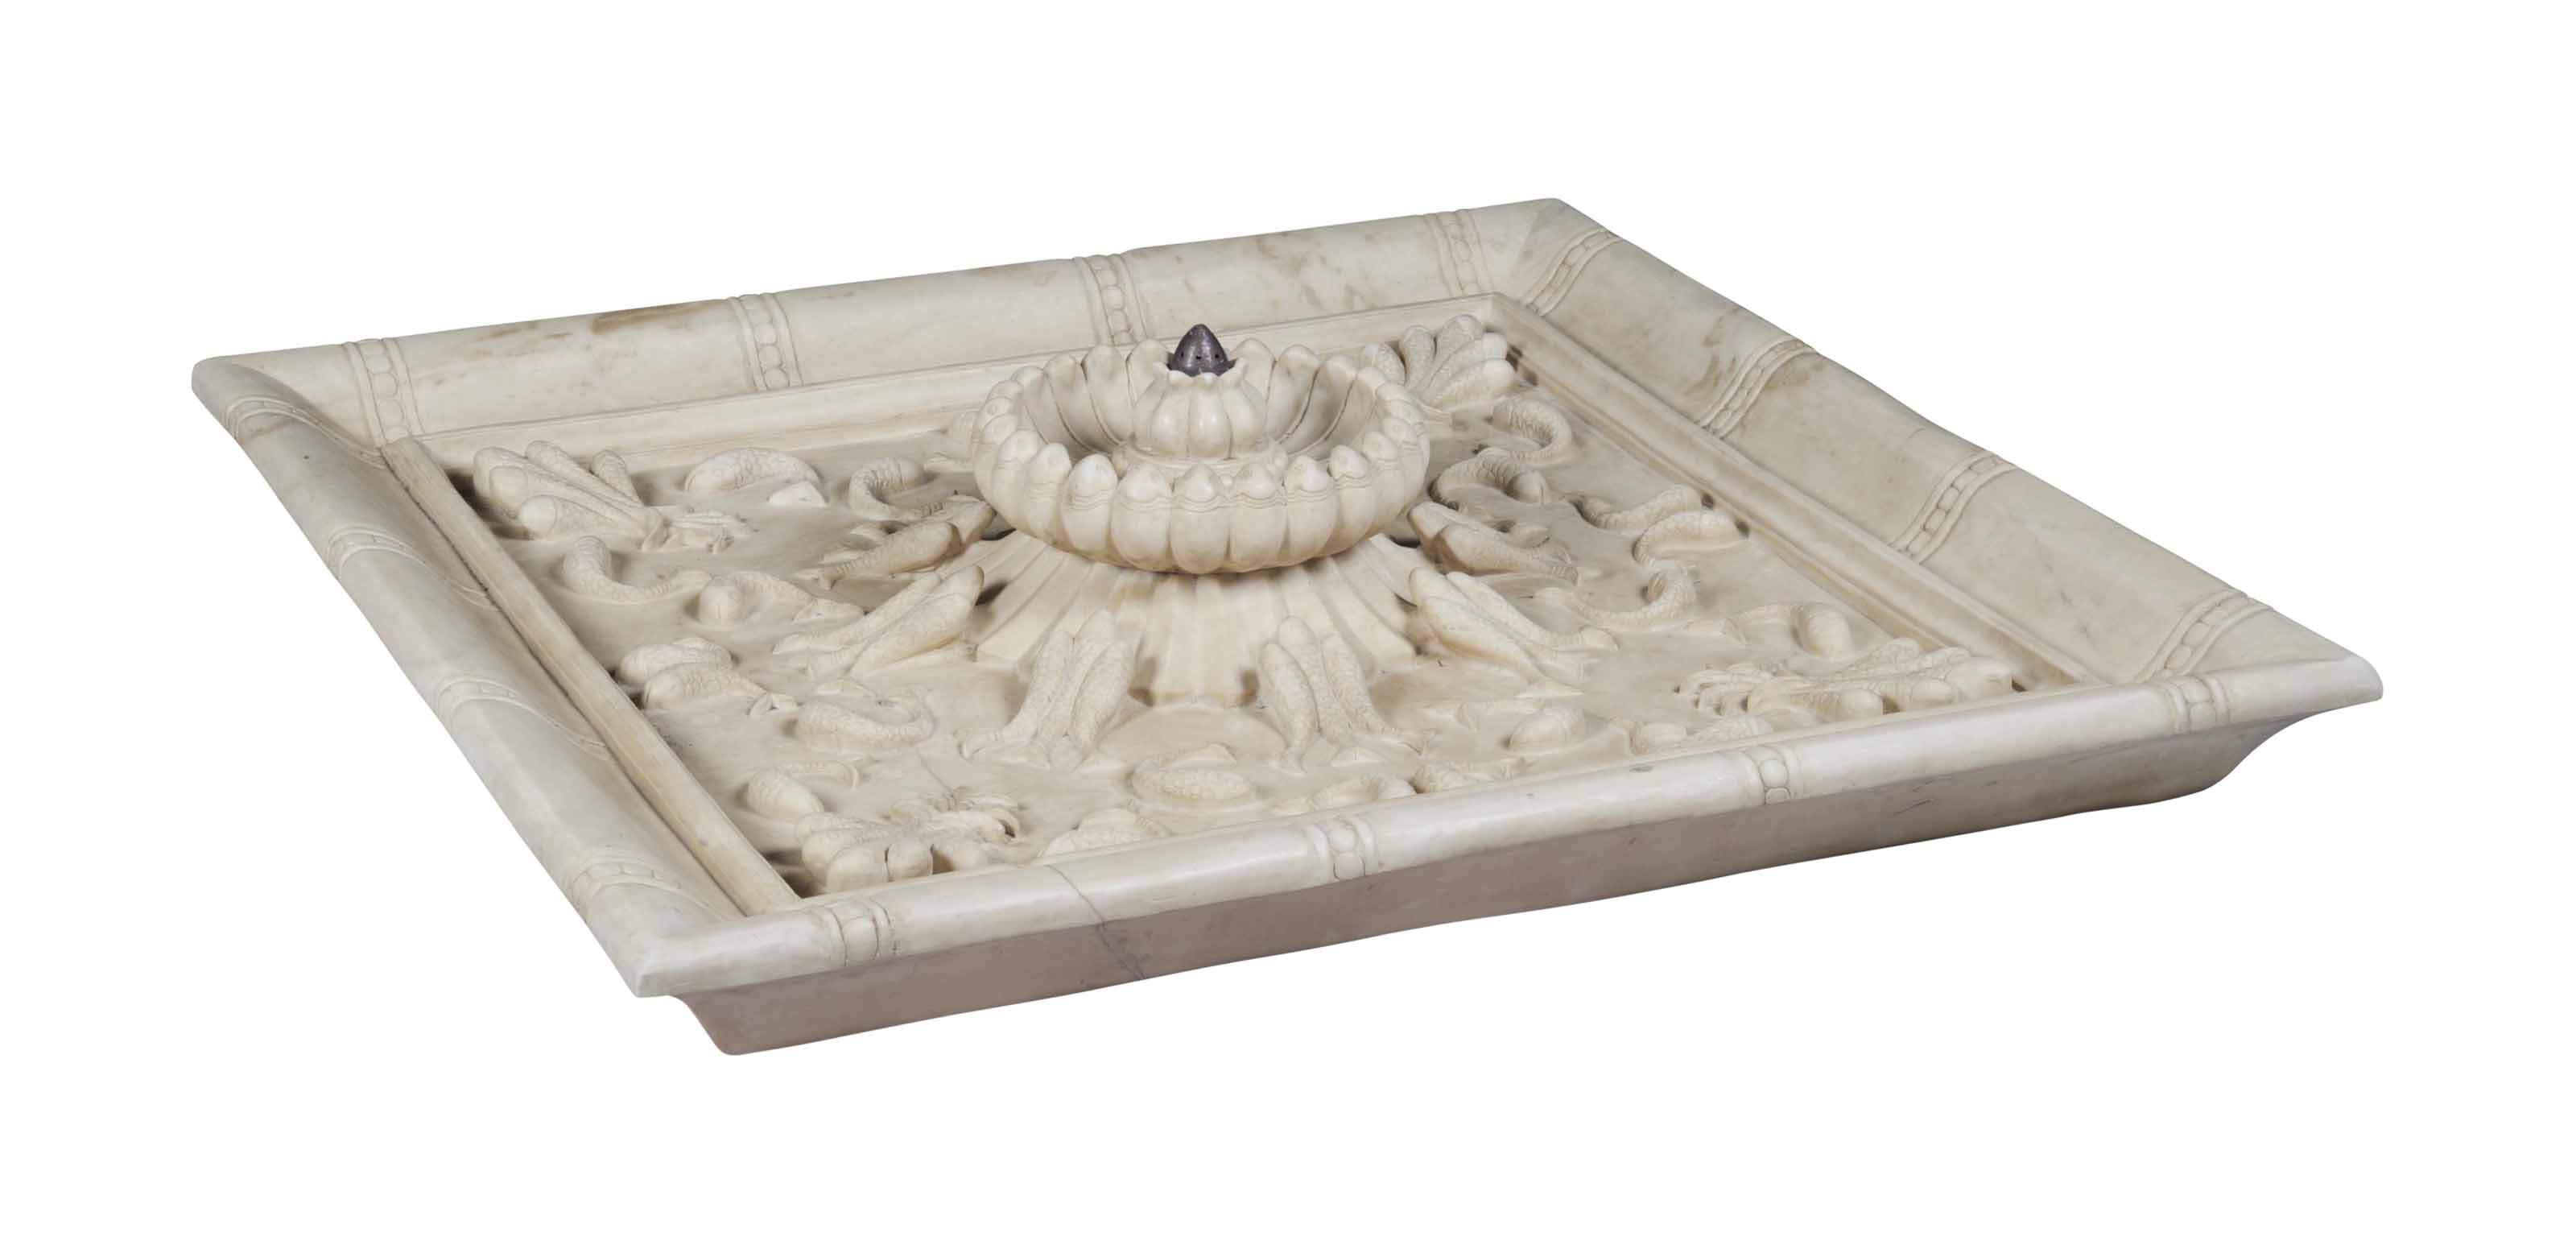 AN INDIAN MARBLE FOUNTAIN